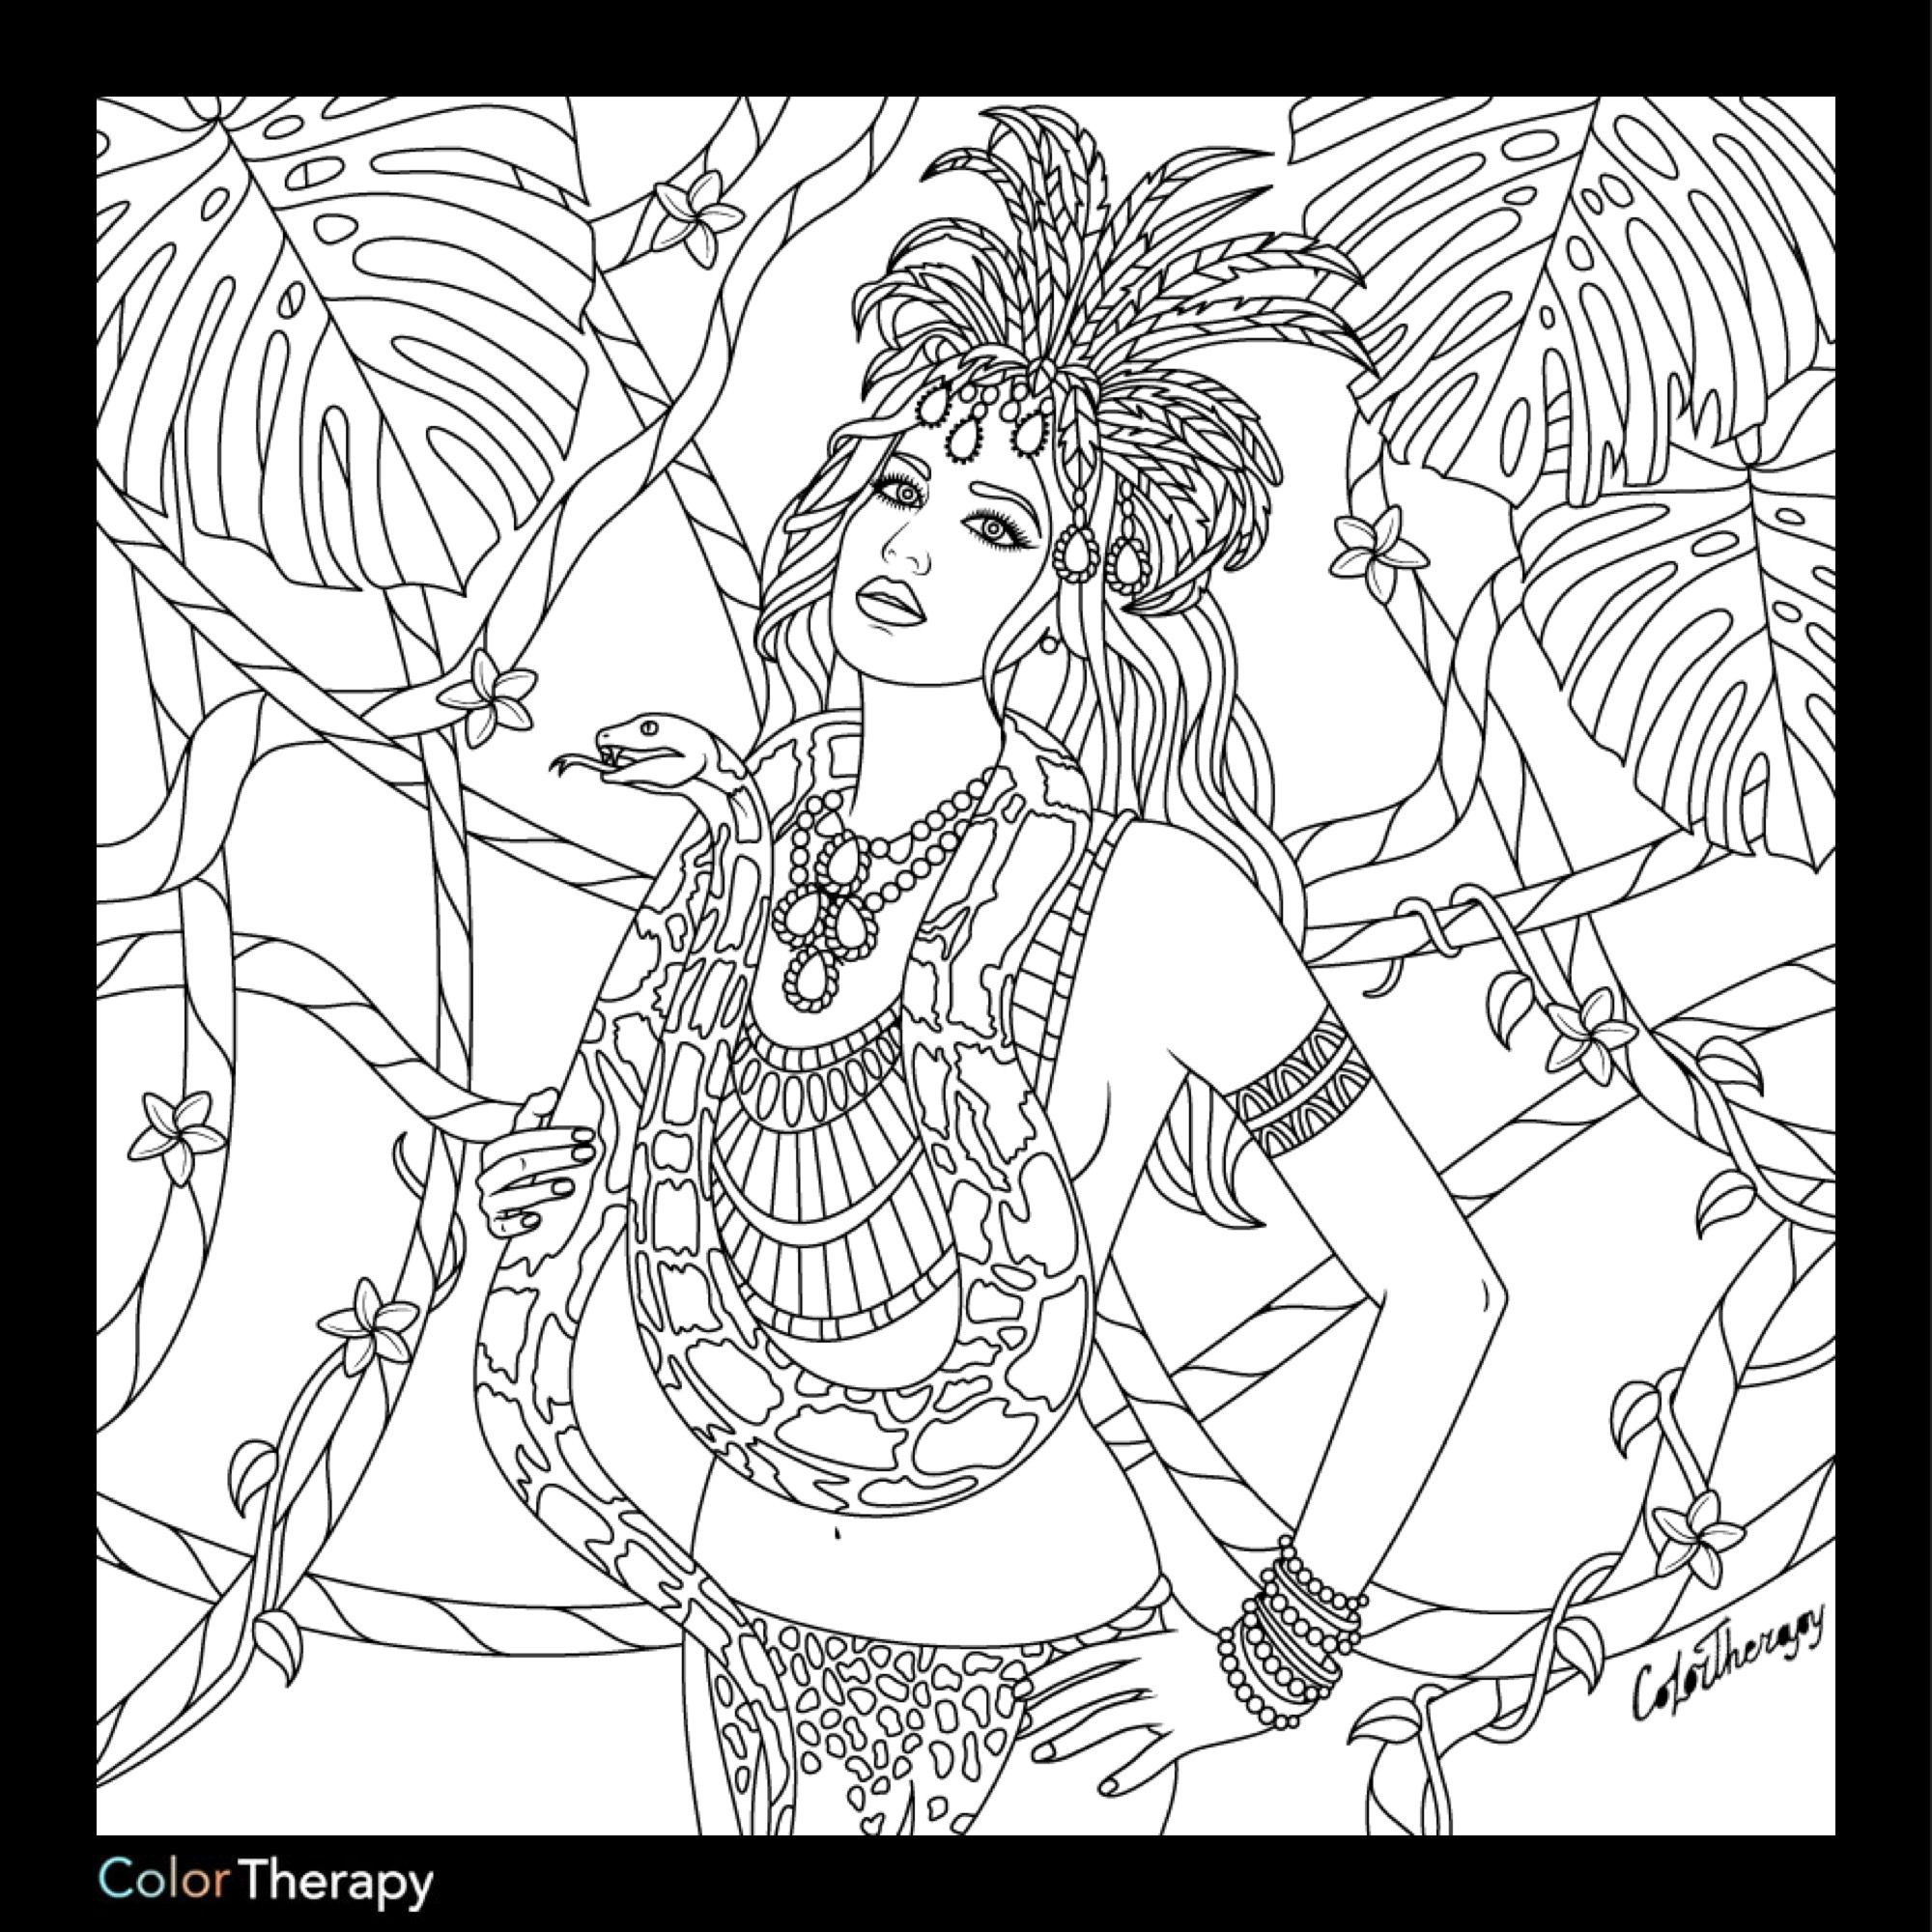 Jungle beauty colouring page | Beautiful Women Coloring Pages for ...